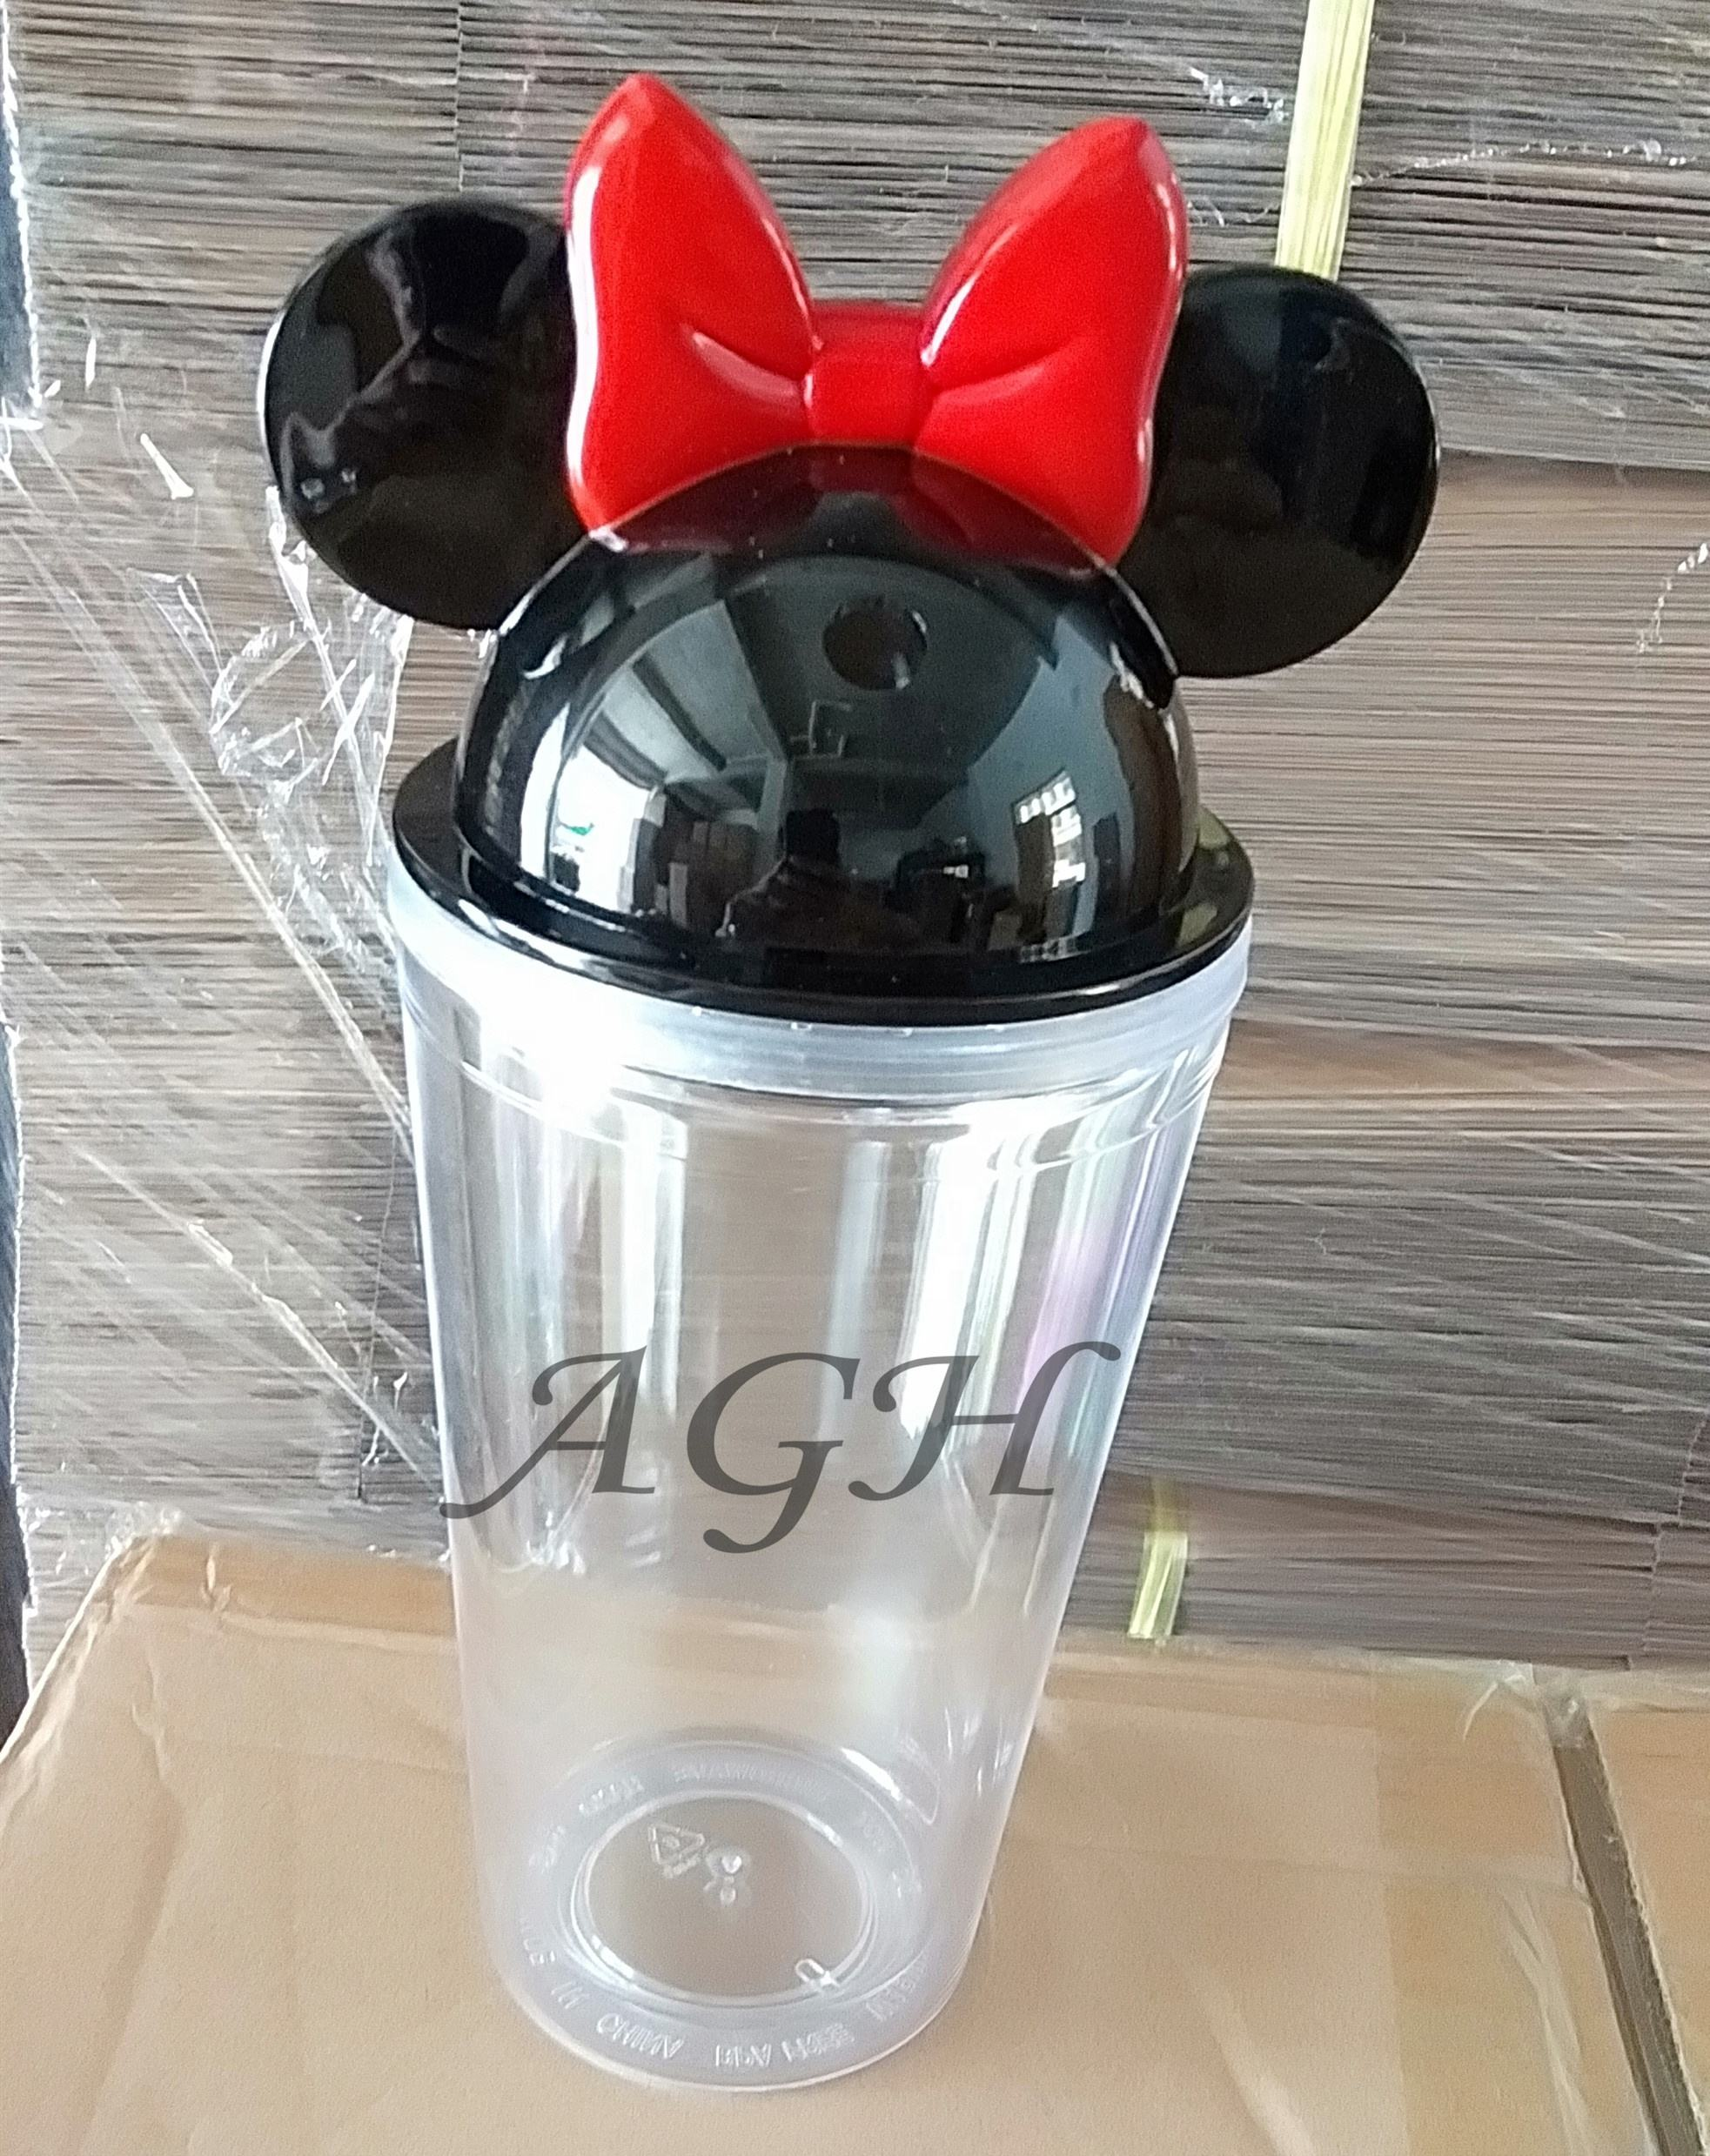 Ready to ship:New double walled tumbler plastic Acrylic Clear Water Tumbler 16oz Mickey Mouse Minnie Tumbler Cup BPA free